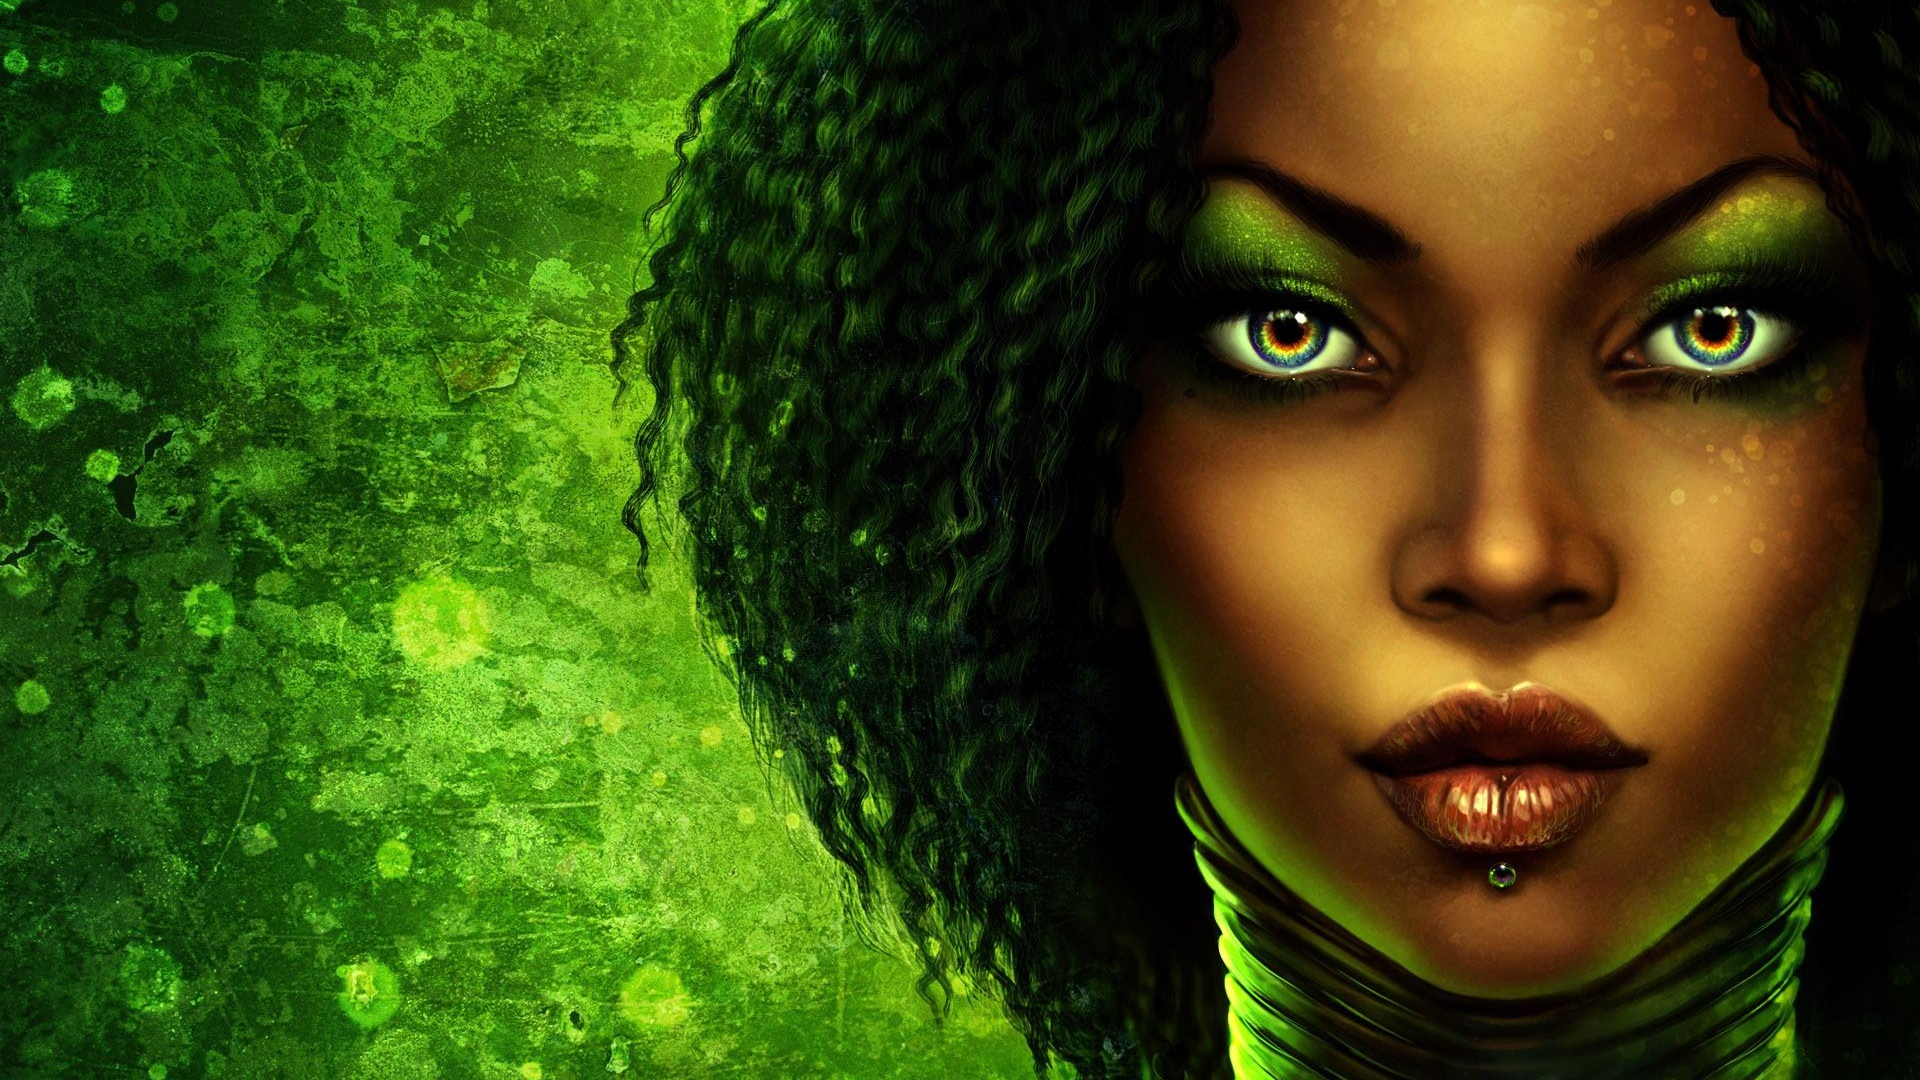 girl-person-green-make-up-piercing-lips-1920x1080